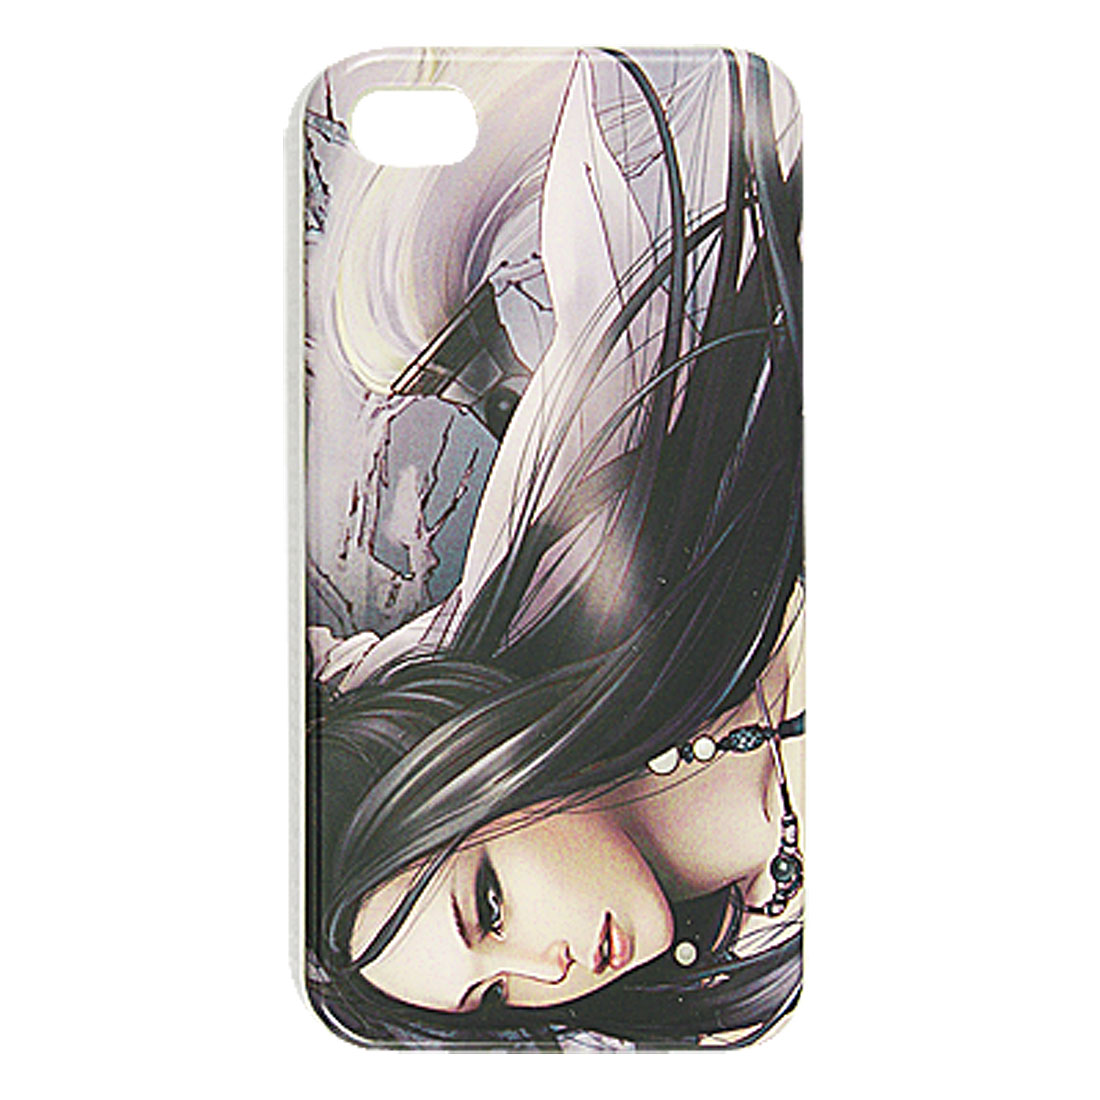 Long Hair Cartoon Girl Print IMD Hard Plastic Back Case for iPhone 4 4G 4S